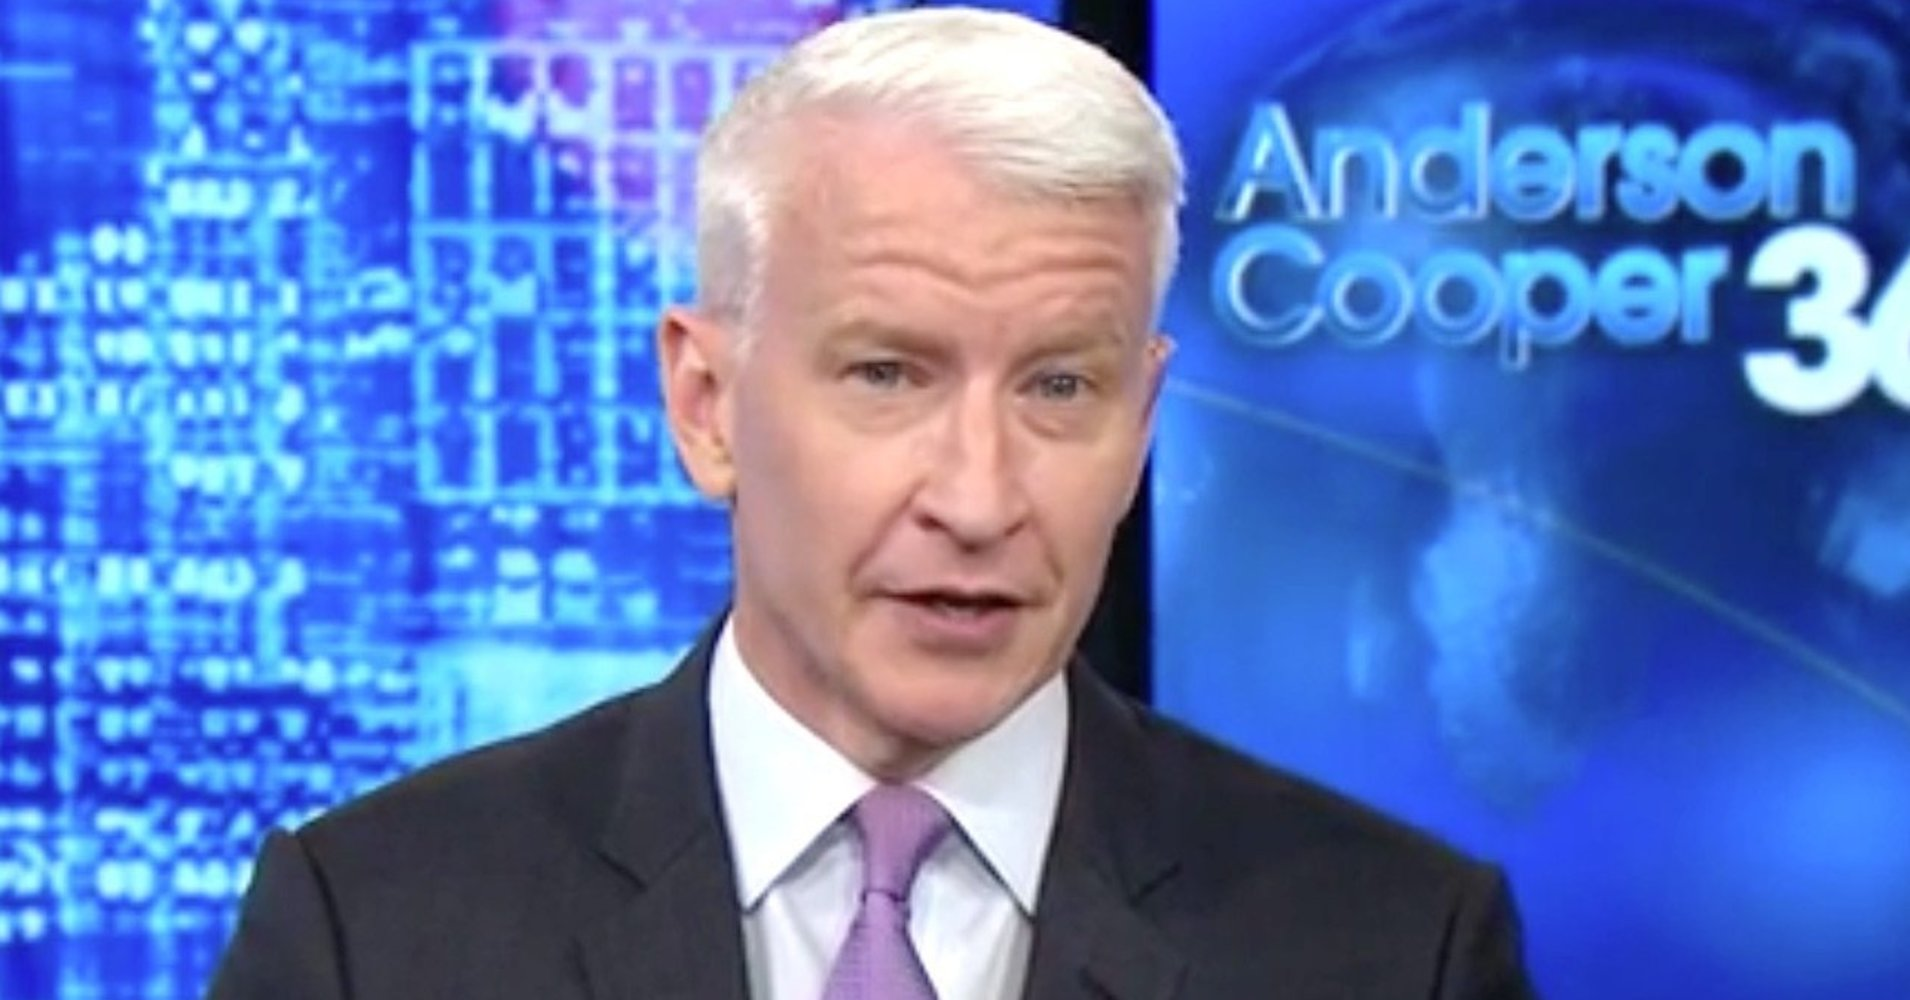 Anderson Cooper has a very blunt message for 'recreational liar' Sean Spicer https://t.co/P23a0j4Ana https://t.co/tBxqXxMzzb